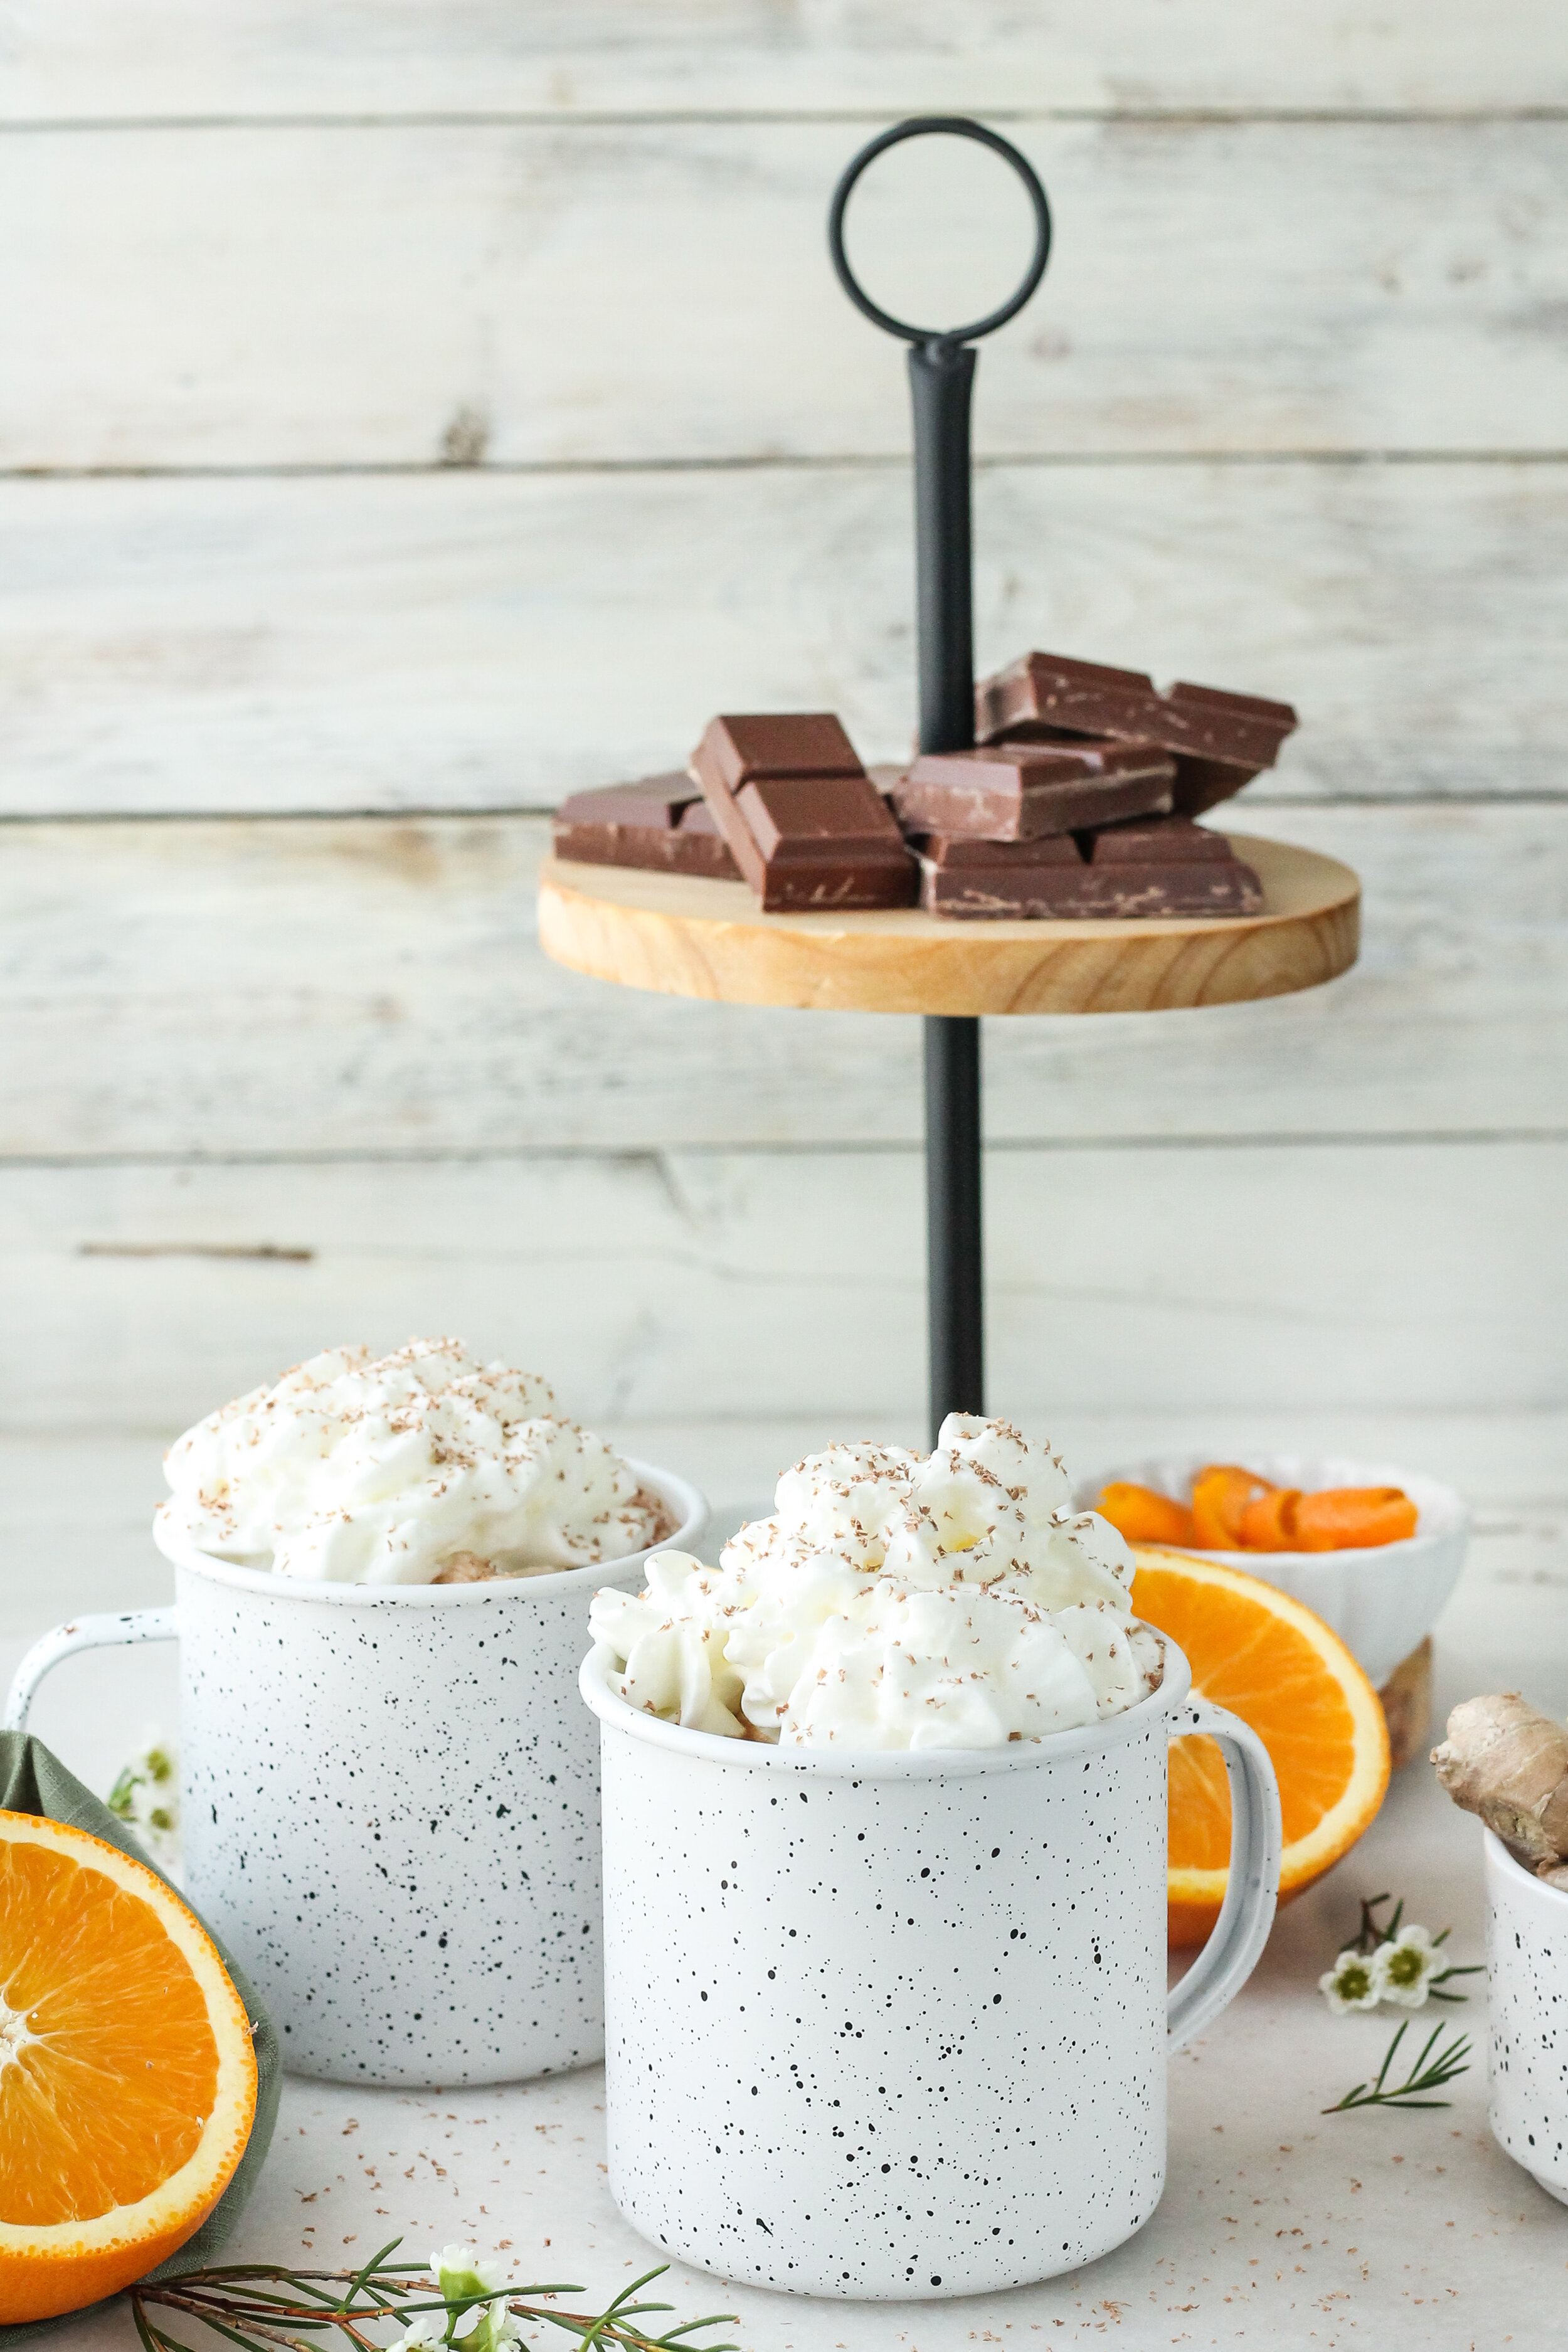 This spicy and luxuriously-smooth Orange, Ginger & Cardamom Hot Chocolate might just become your new favorite fall sipper!  Find the recipe on www.pedanticfoodie.com!